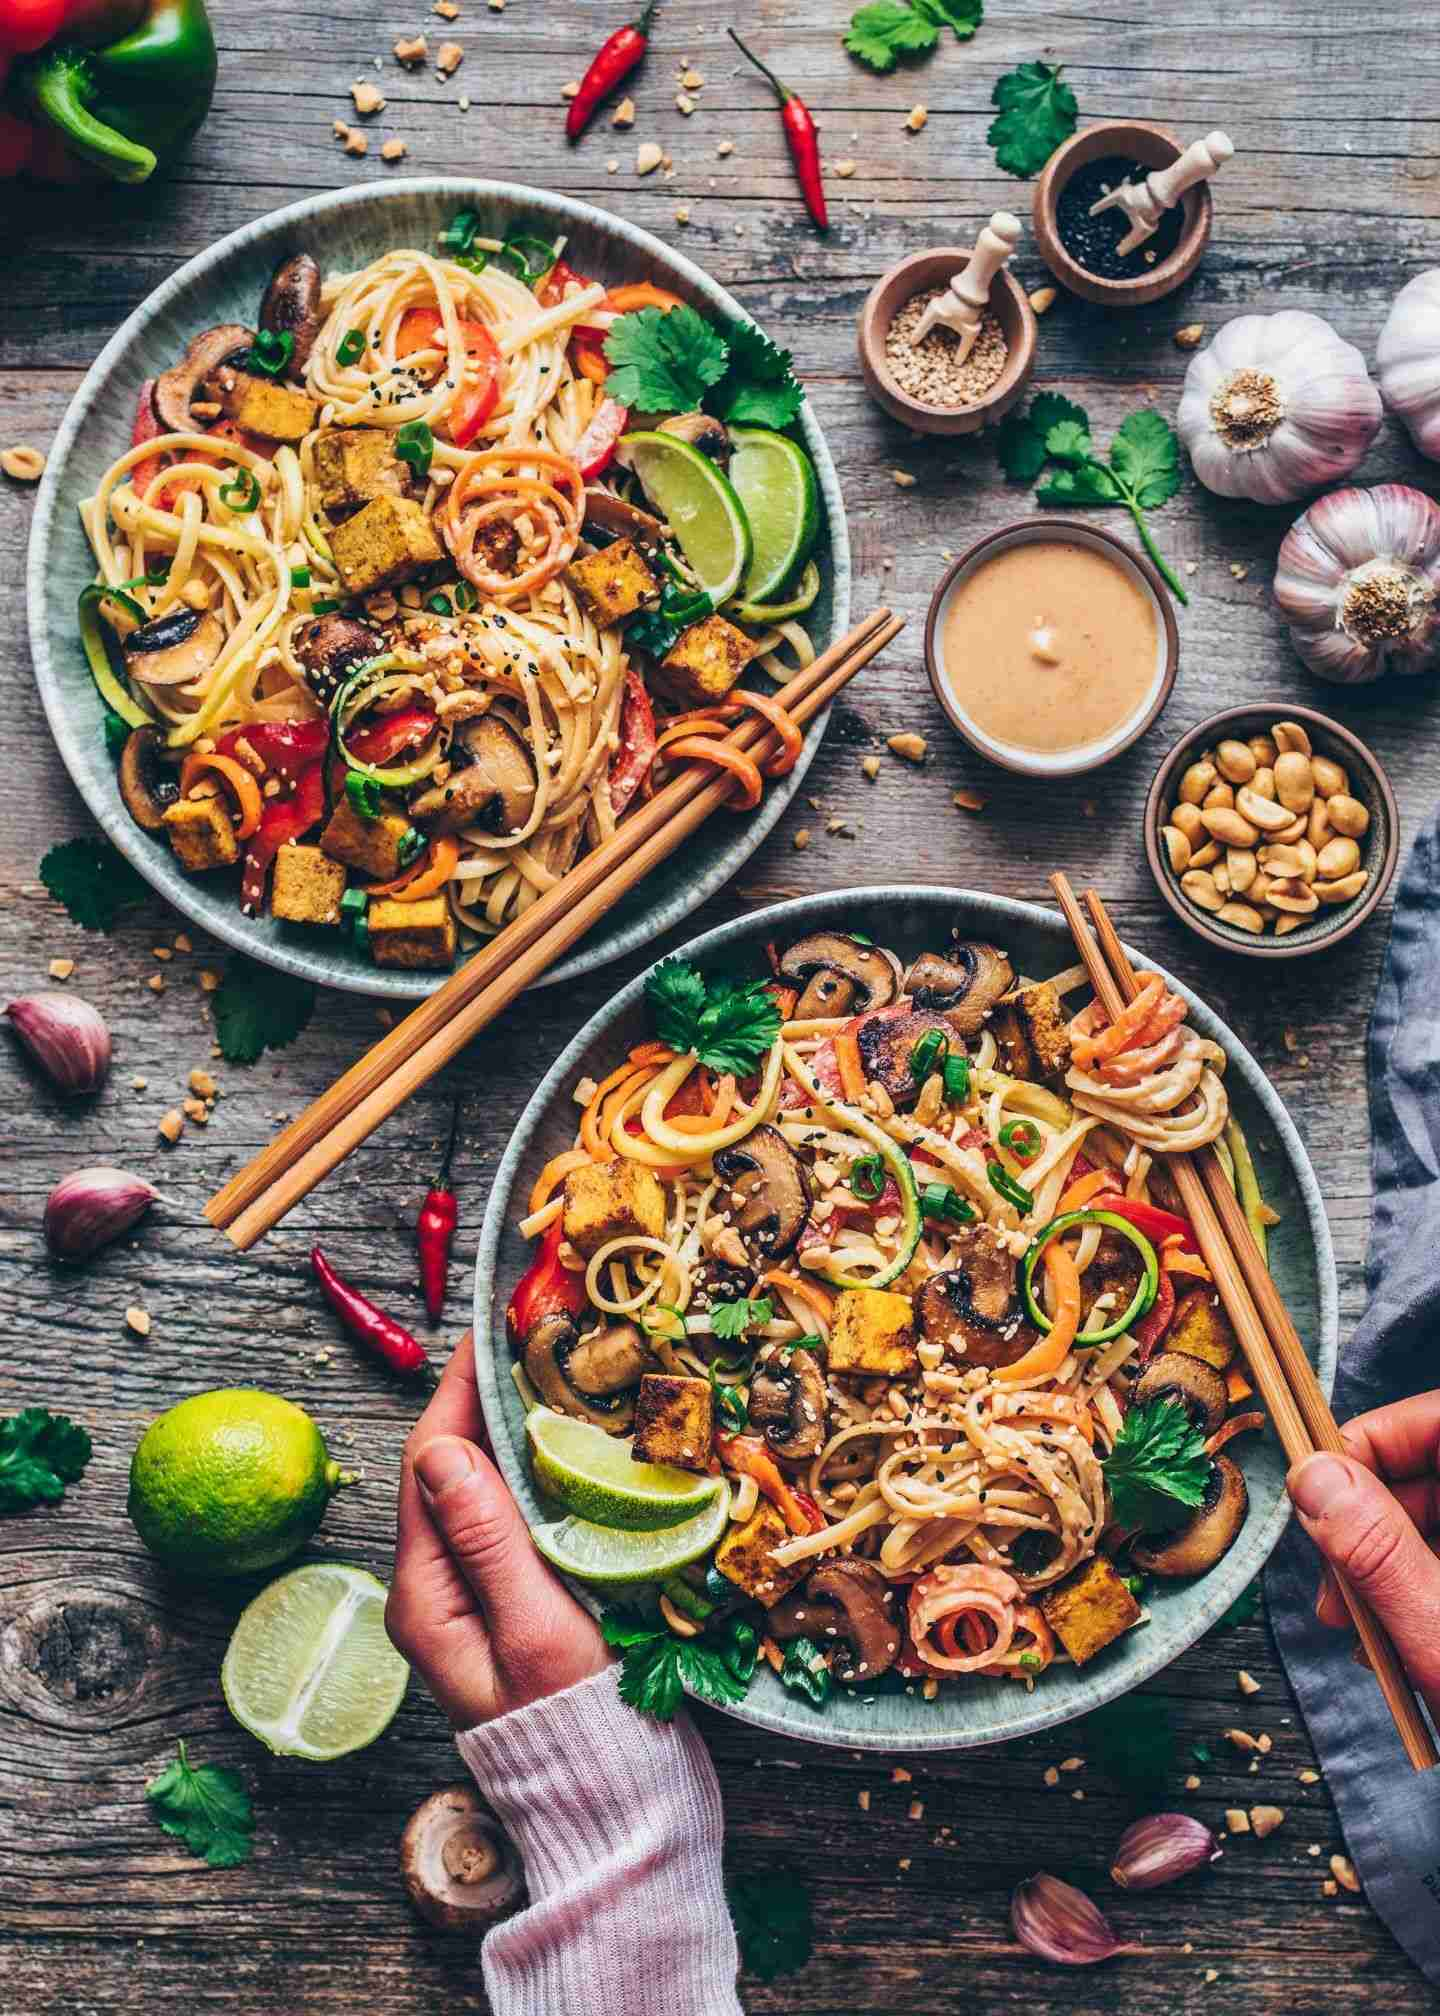 Vegan Pad Thai with vegetable noodles & tofu – Bianca Zapatka | Recipes – Kendra&HealthyRecipesEasy